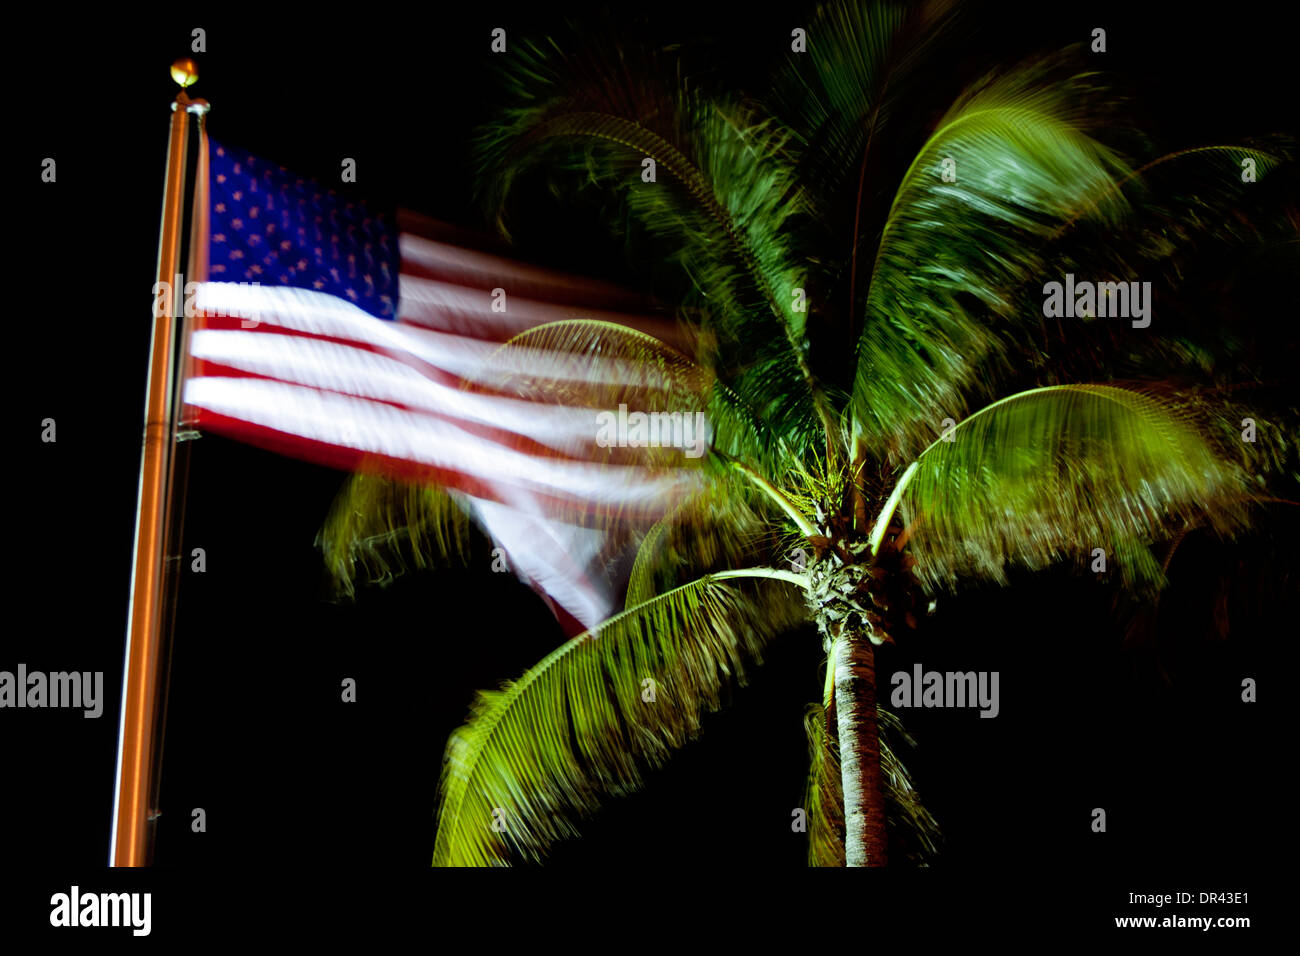 Motion Blur of American Flag and Palm Tree - Pompano Beach, Florida USA - Stock Image